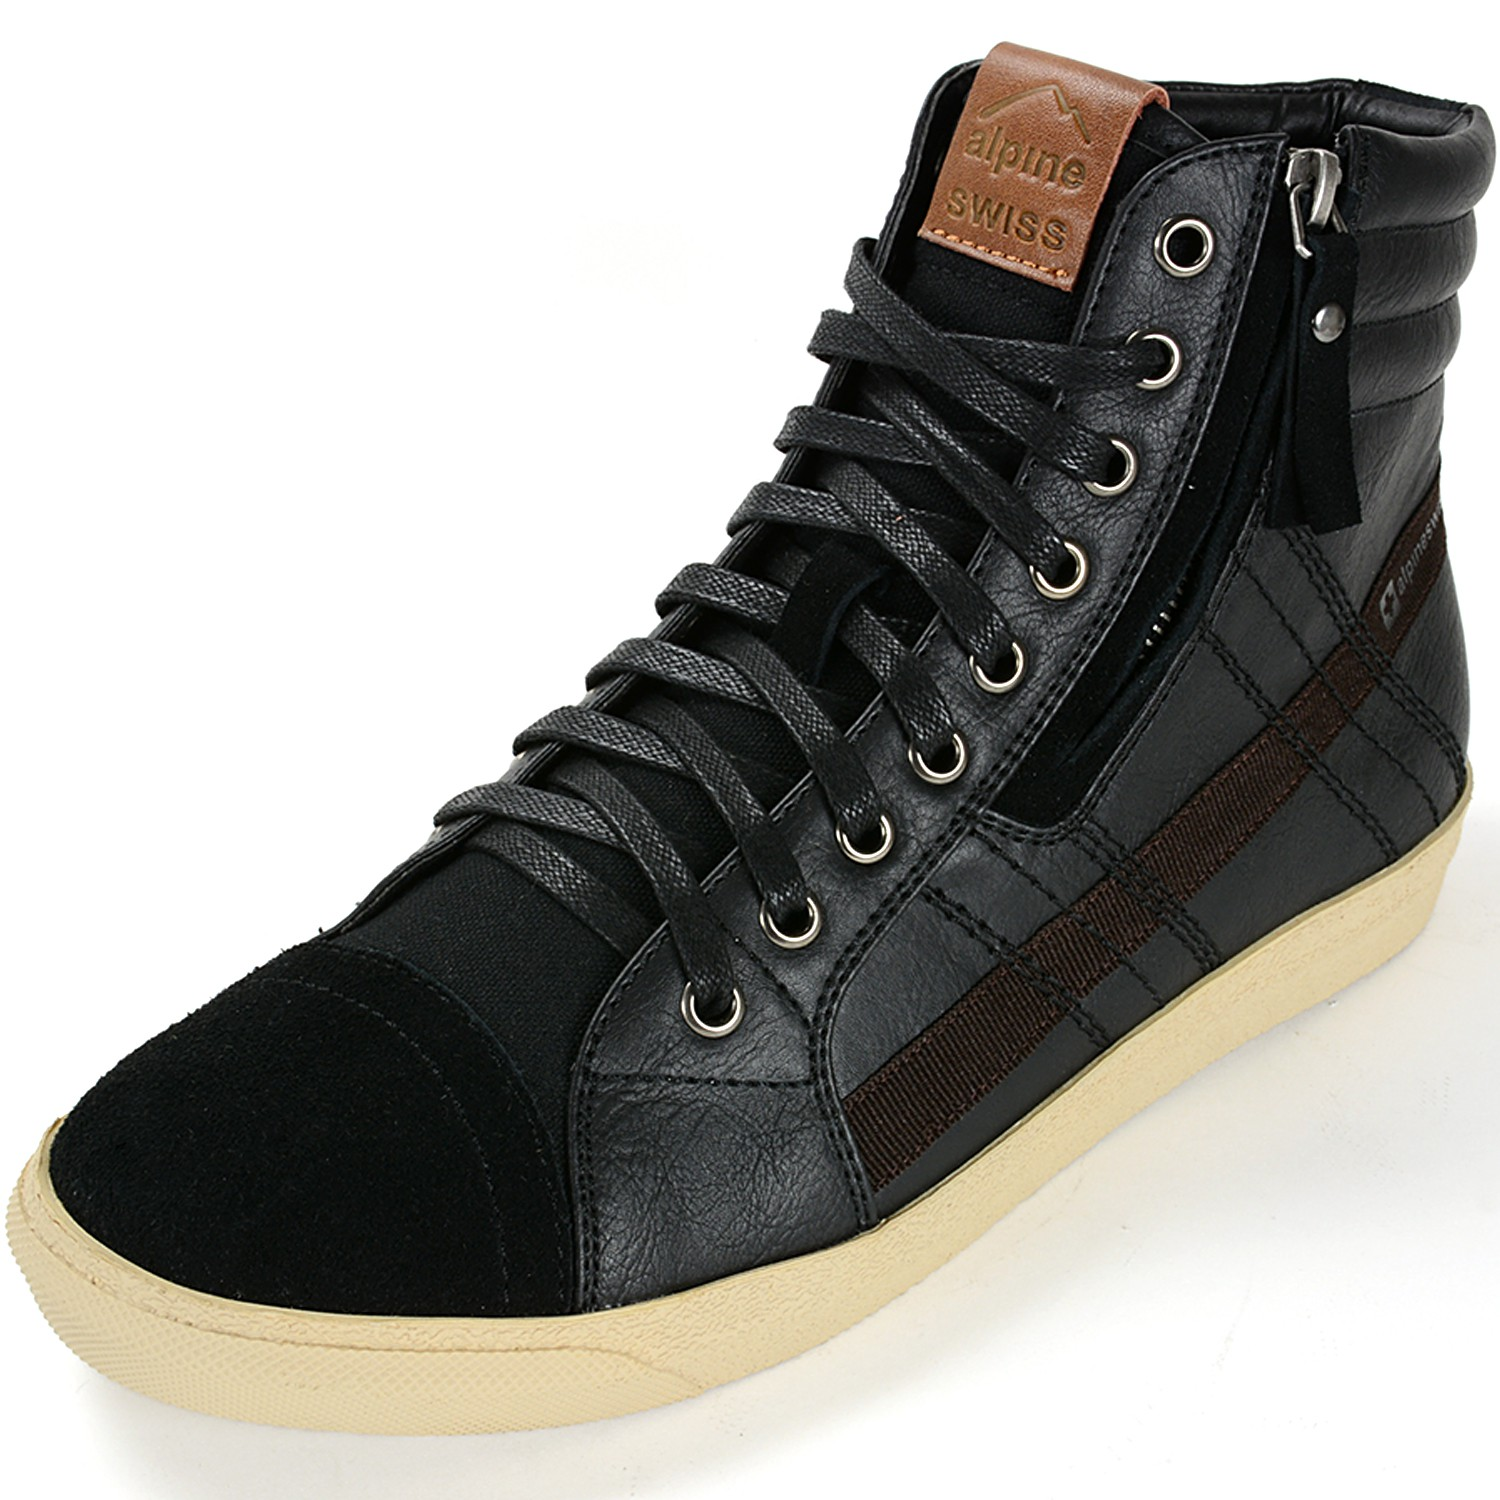 Alpine Swiss Reto Mens High Top Sneakers Lace Up & Zip Ankle ...